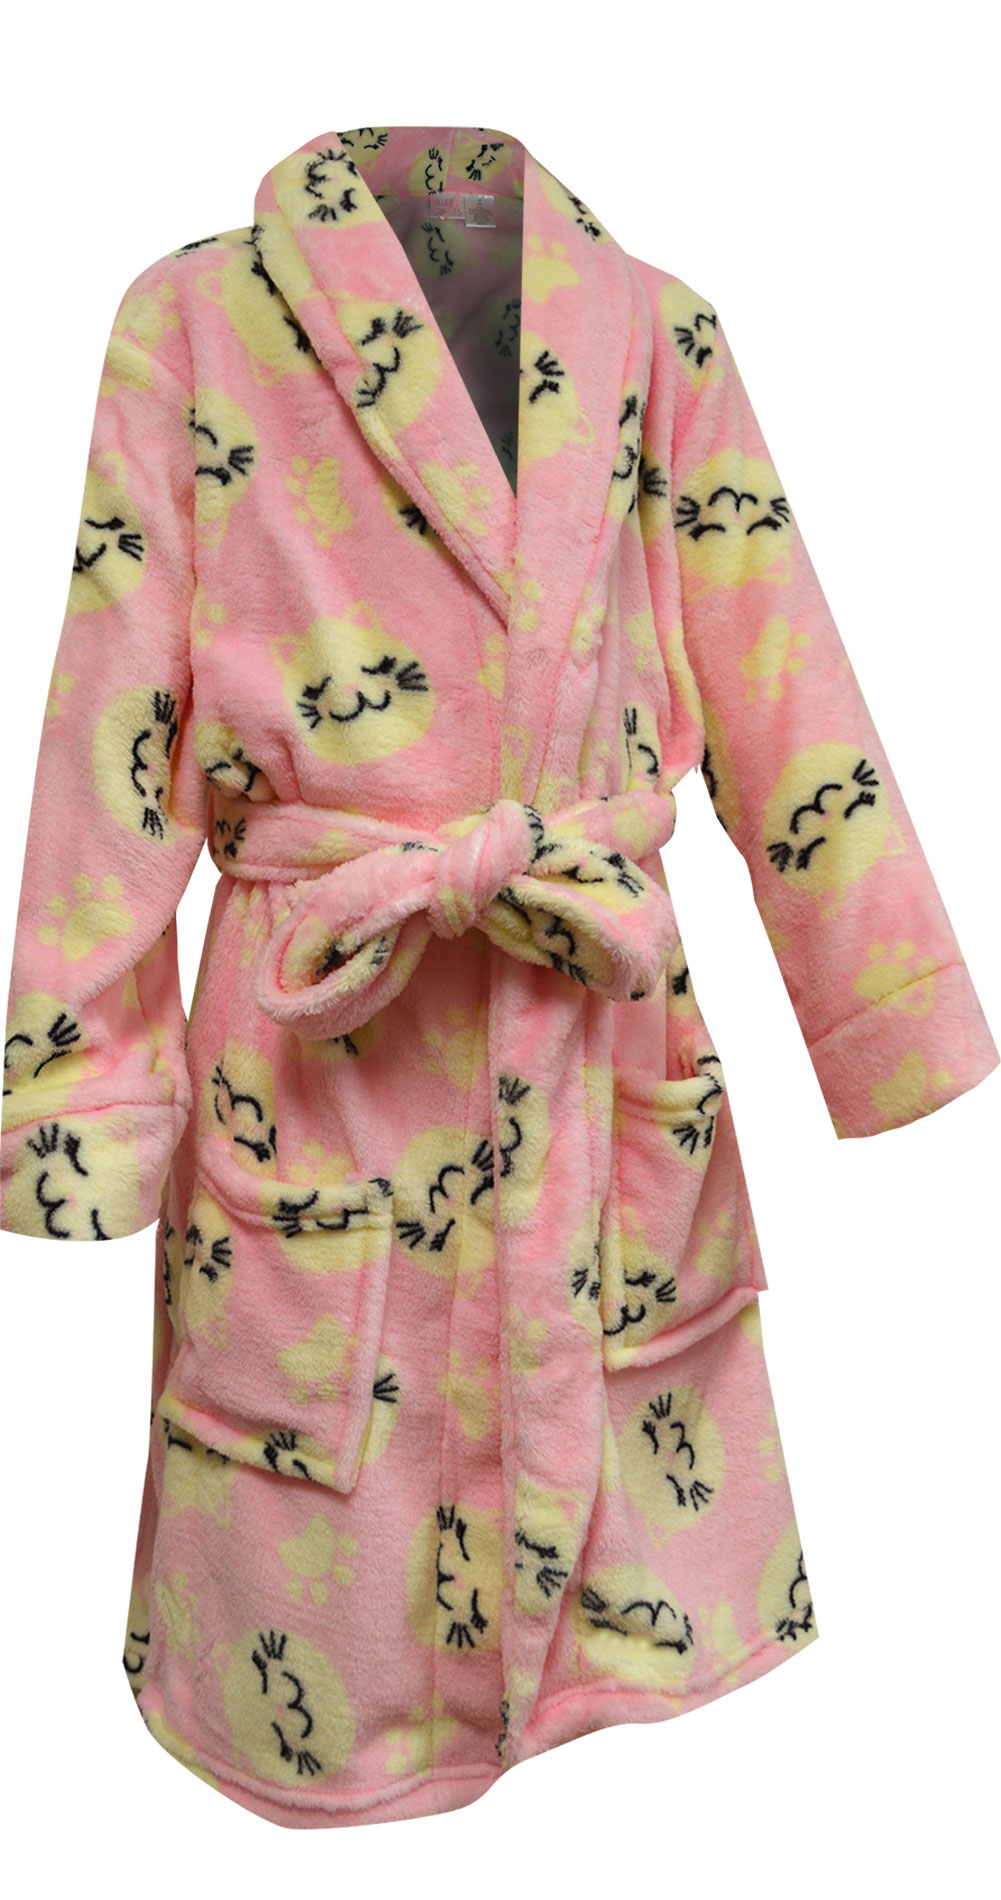 Image of Kitty Cats Girls Plush Pink Robe for girls